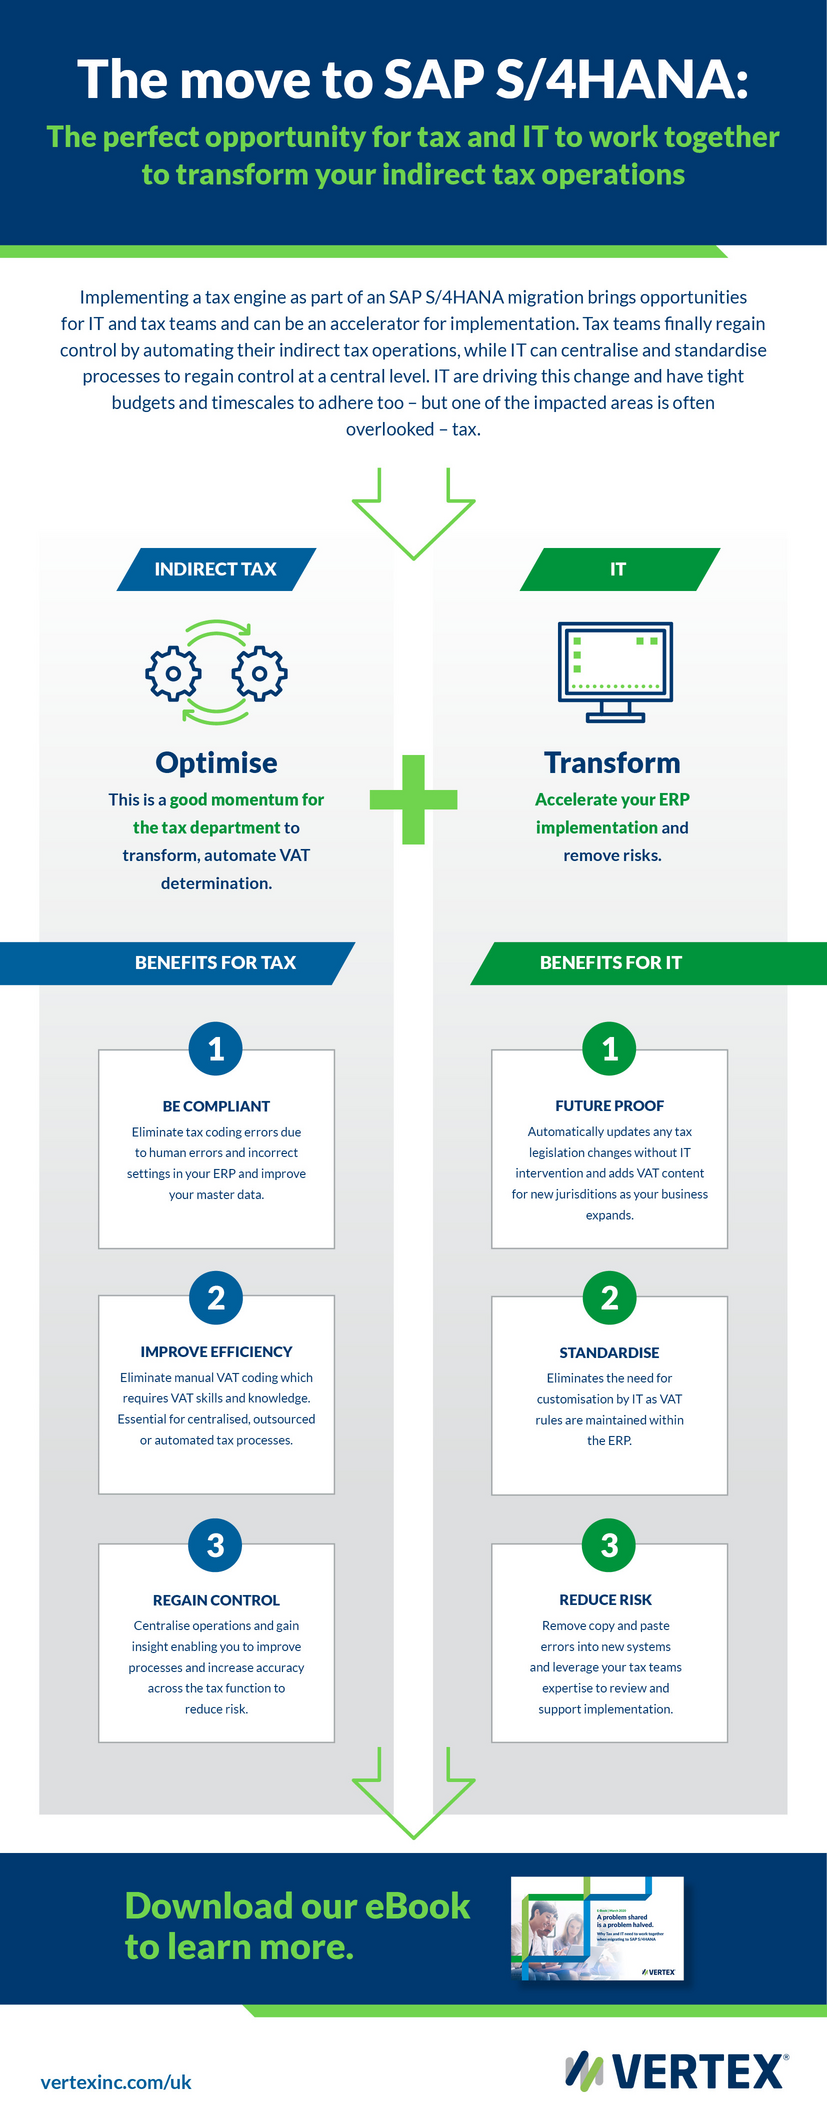 View this infographic to see how tax teams can finally regain control by automating their indirect tax operations, while IT can centralise and standardize processes to regain control at a central level.